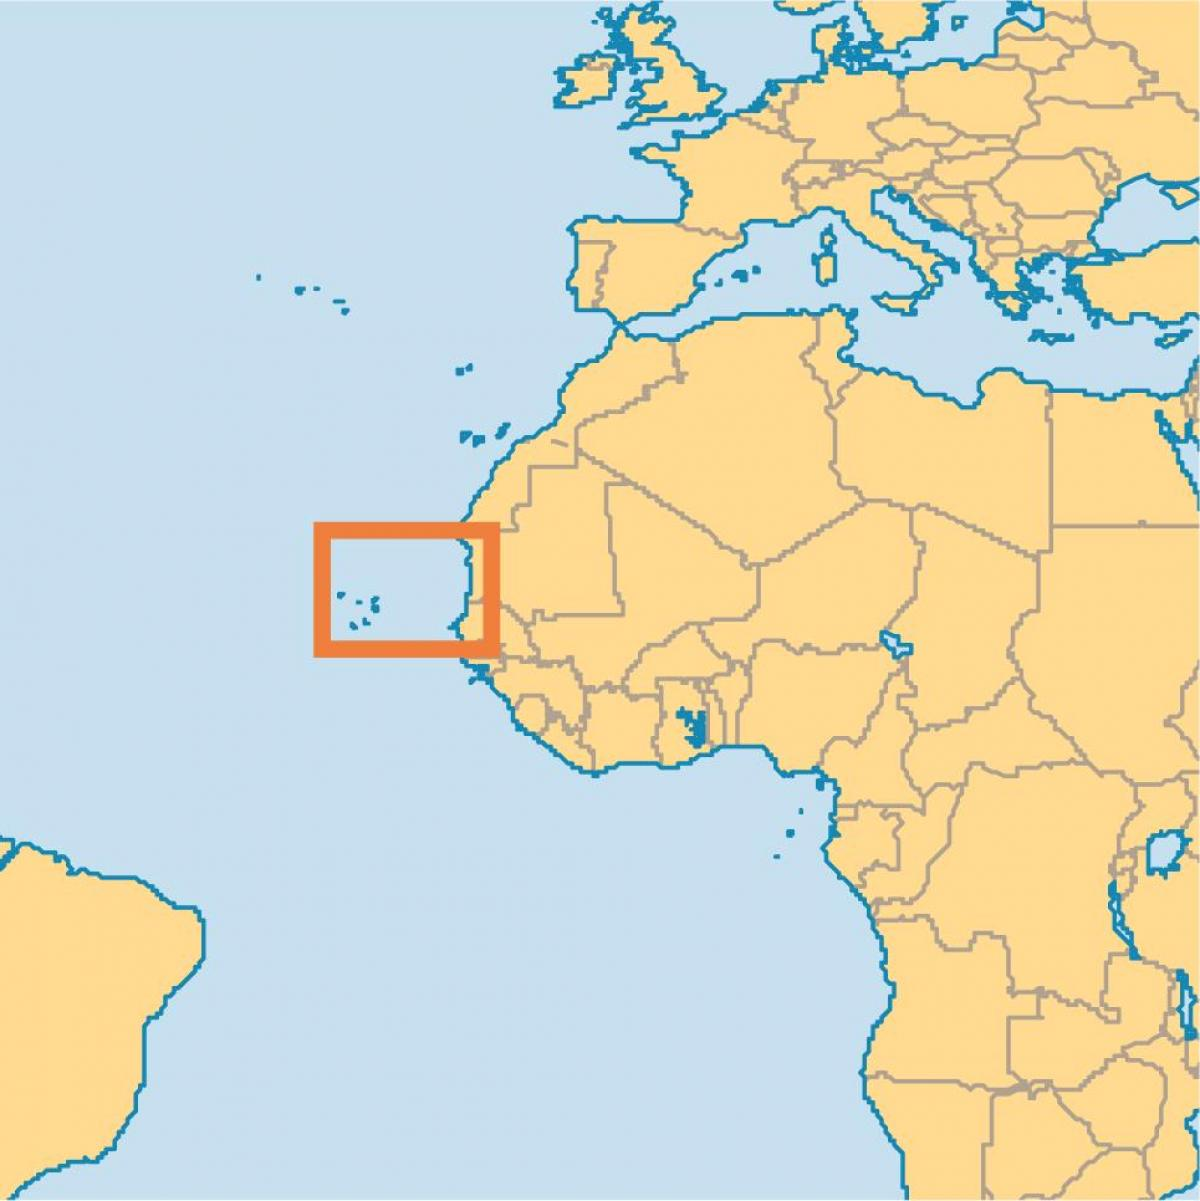 show Cape Verde on world map